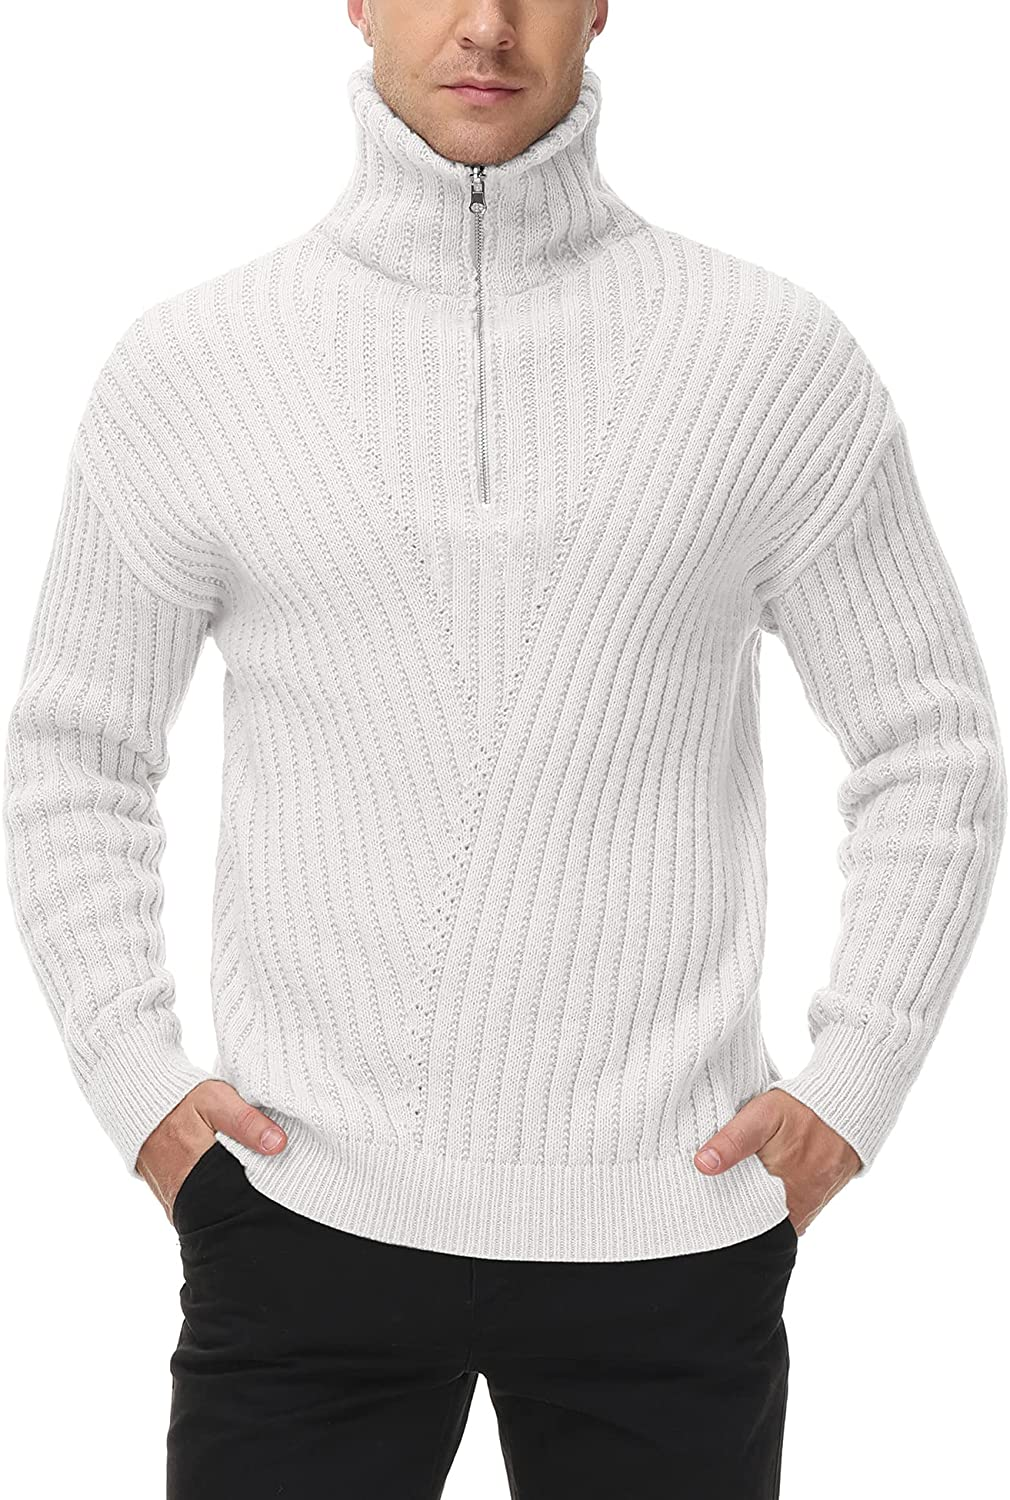 Conmite Men's Casual Max 70% OFF Max 90% OFF Turtleneck Pullover Fit Sweaters Knitt Slim